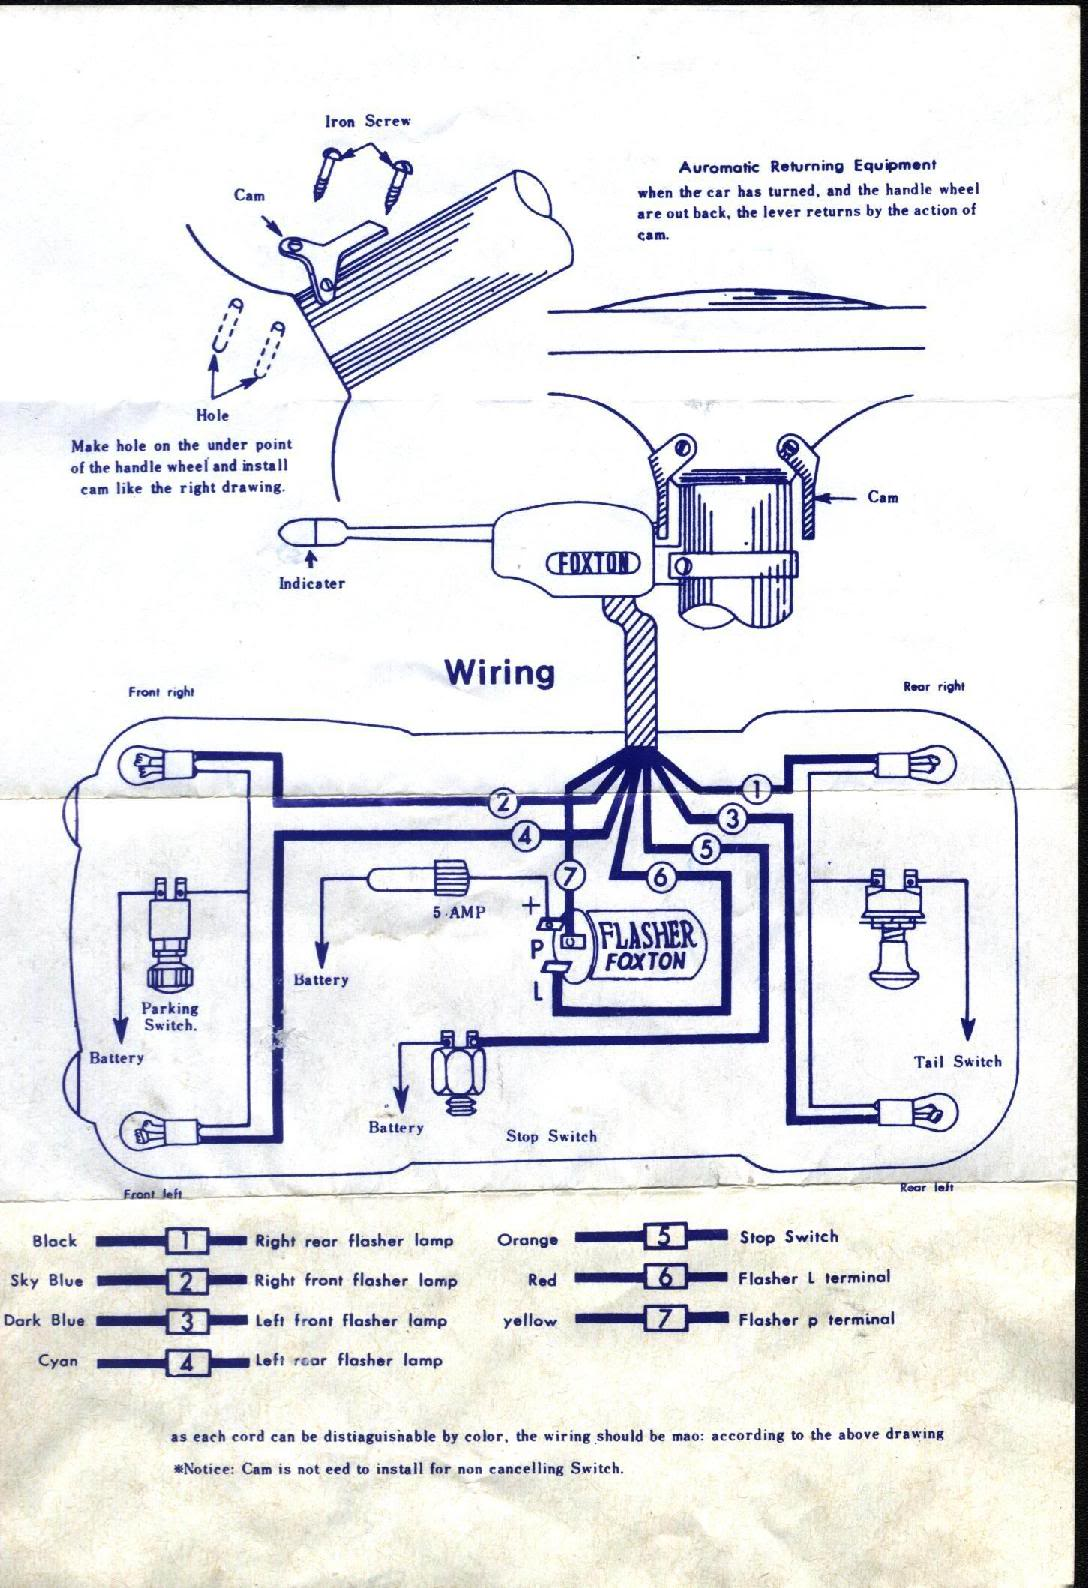 sparton blinker wiring diagram turn signal flasher diagram